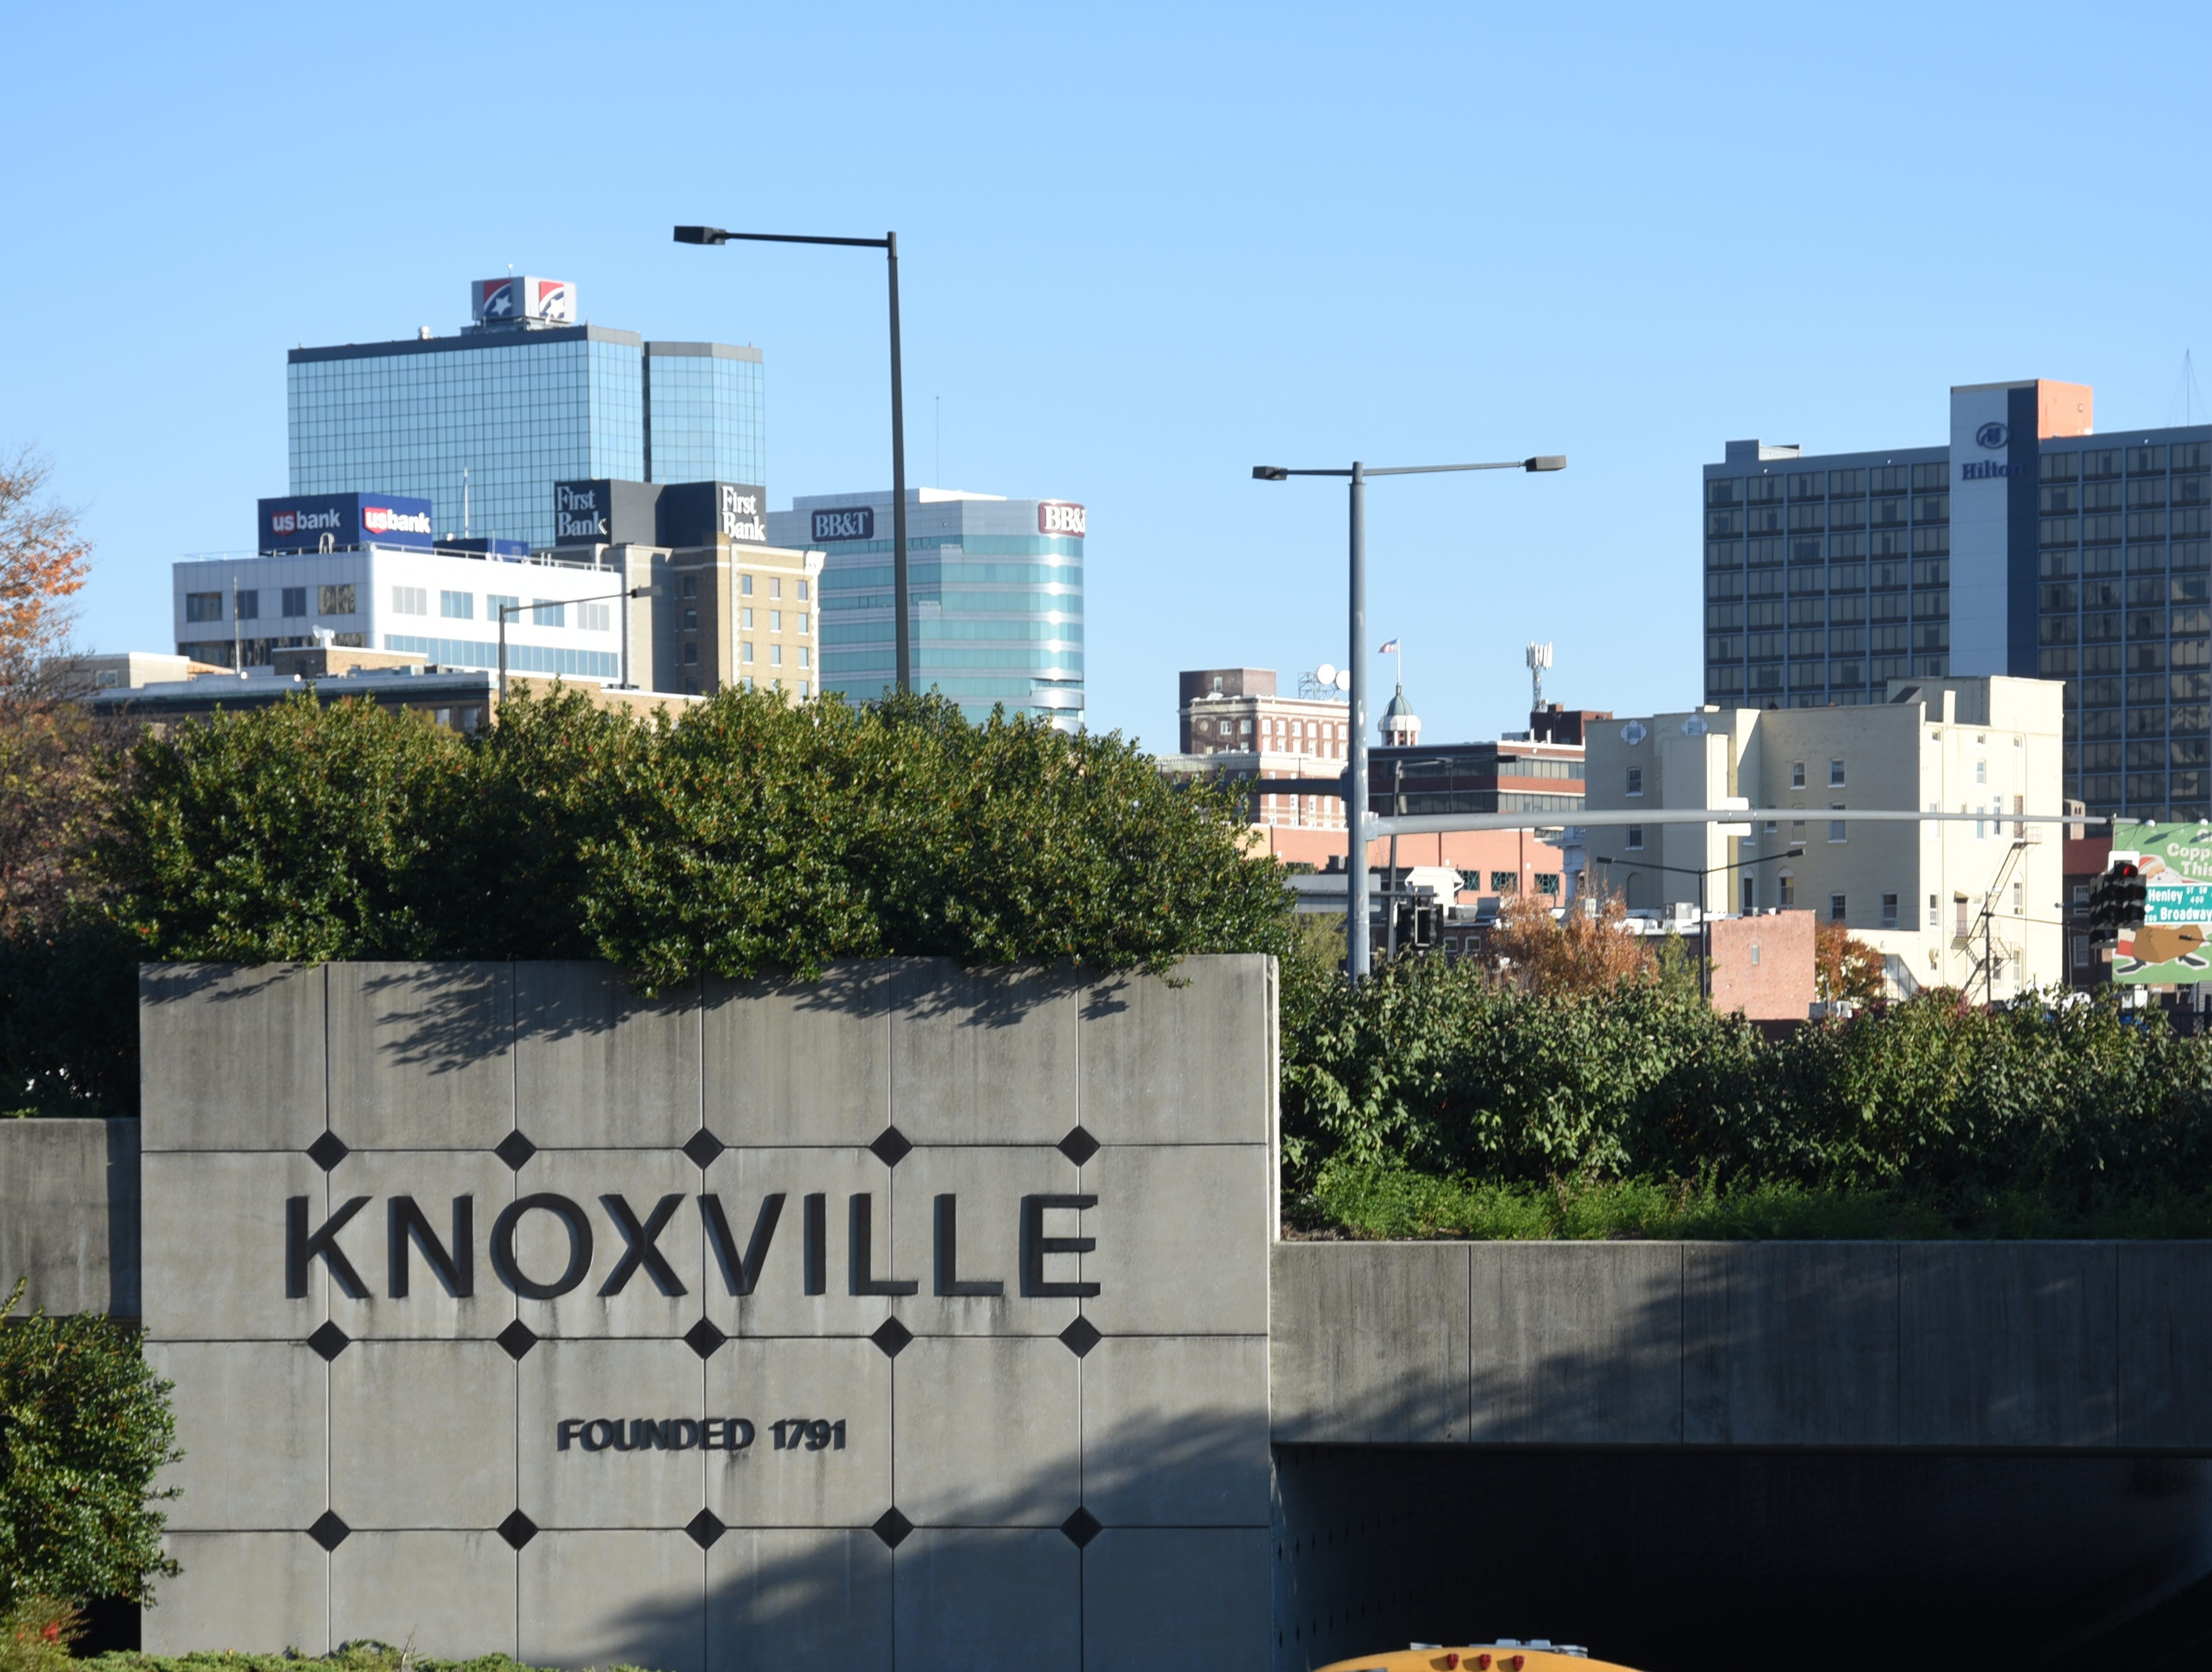 Part of the Knoxville skyline in 2015.